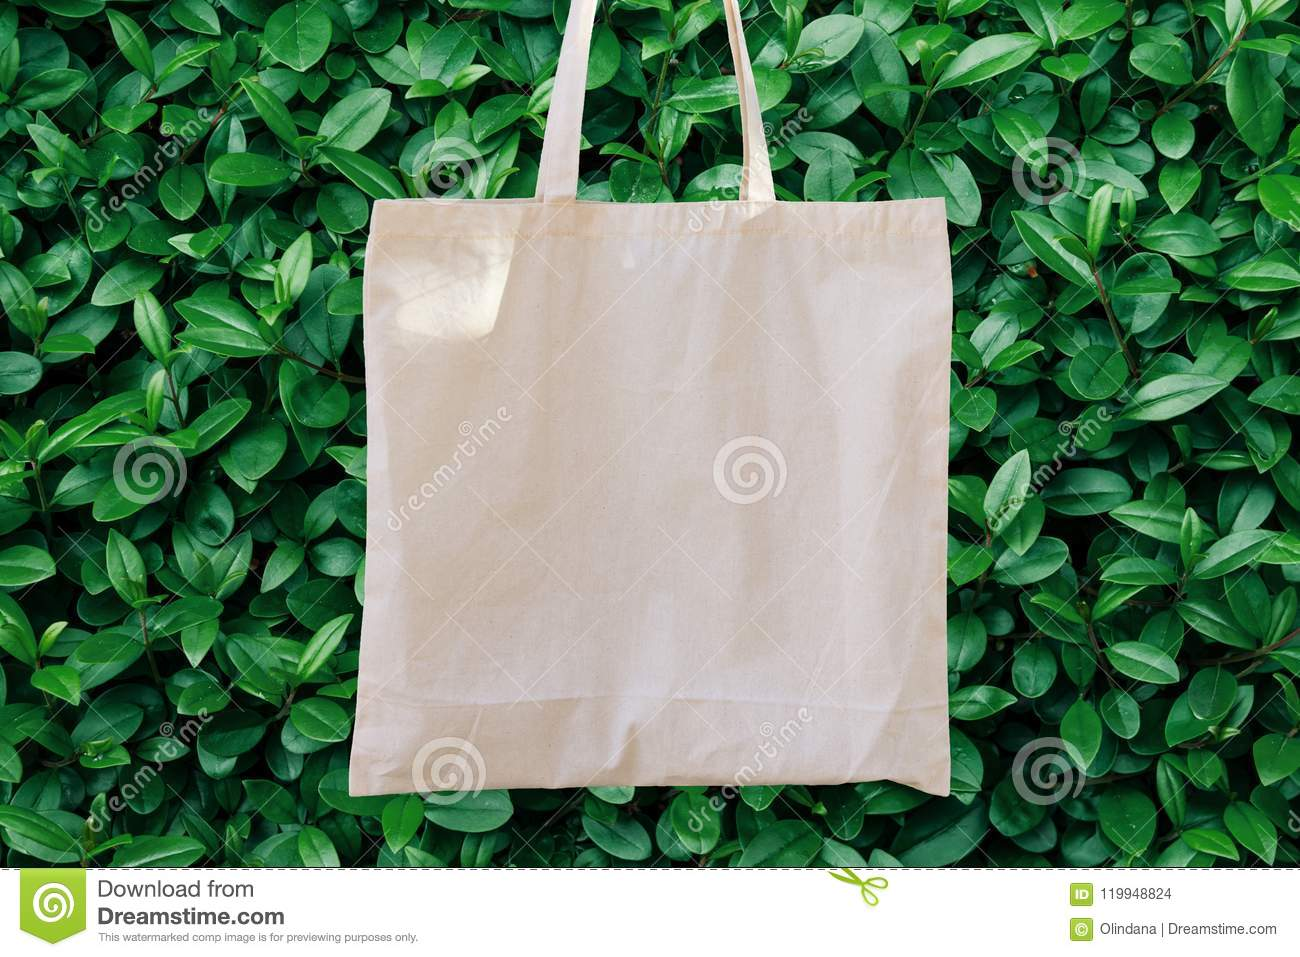 Mockup Linen Cotton Tote Bag on Green Bush Trees Foliage Background. Eco Nature Friendly. Environmental Conservation Recycling